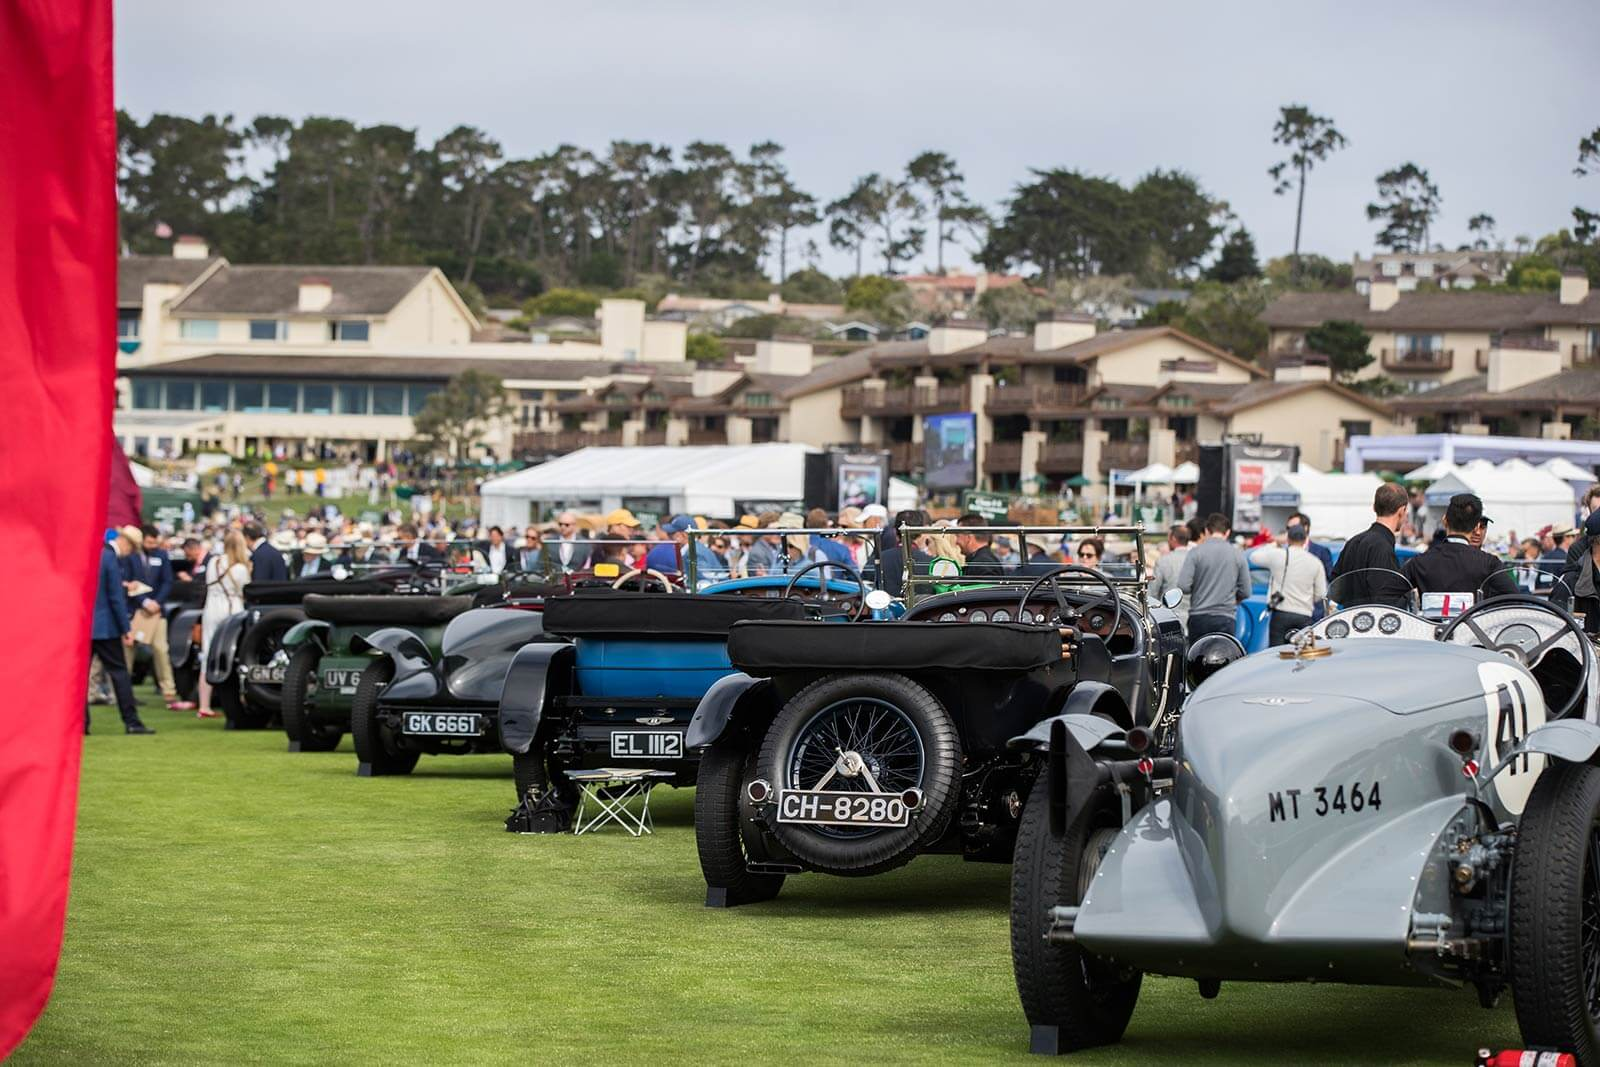 The Show Field at Pebble Beach Concours d'Elegance